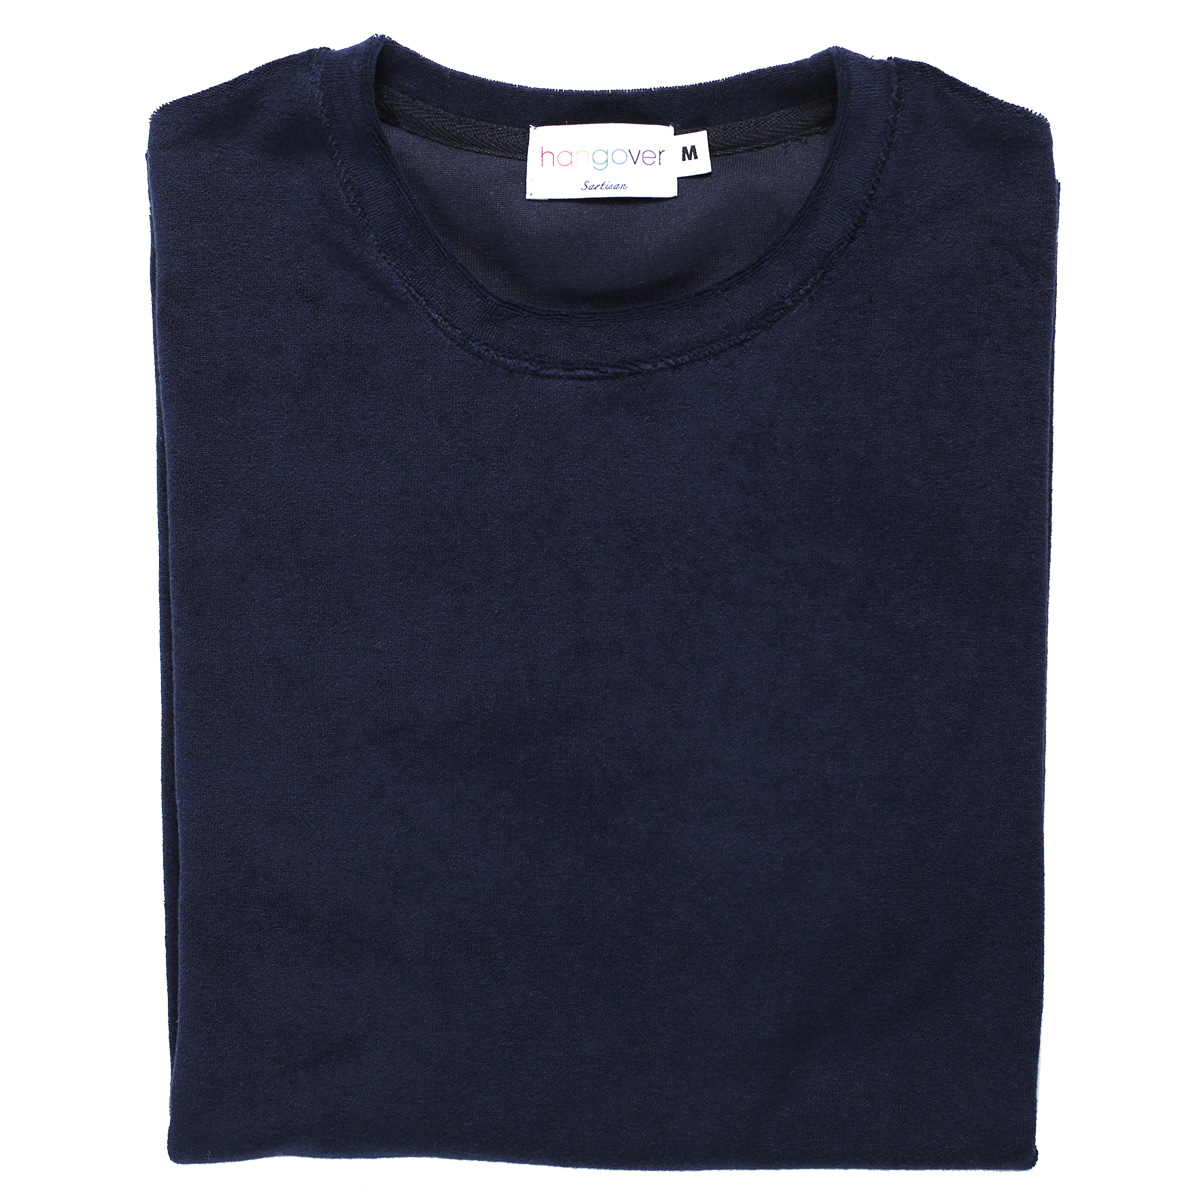 [행오버] TERRY T-SHIRTS_NAVY